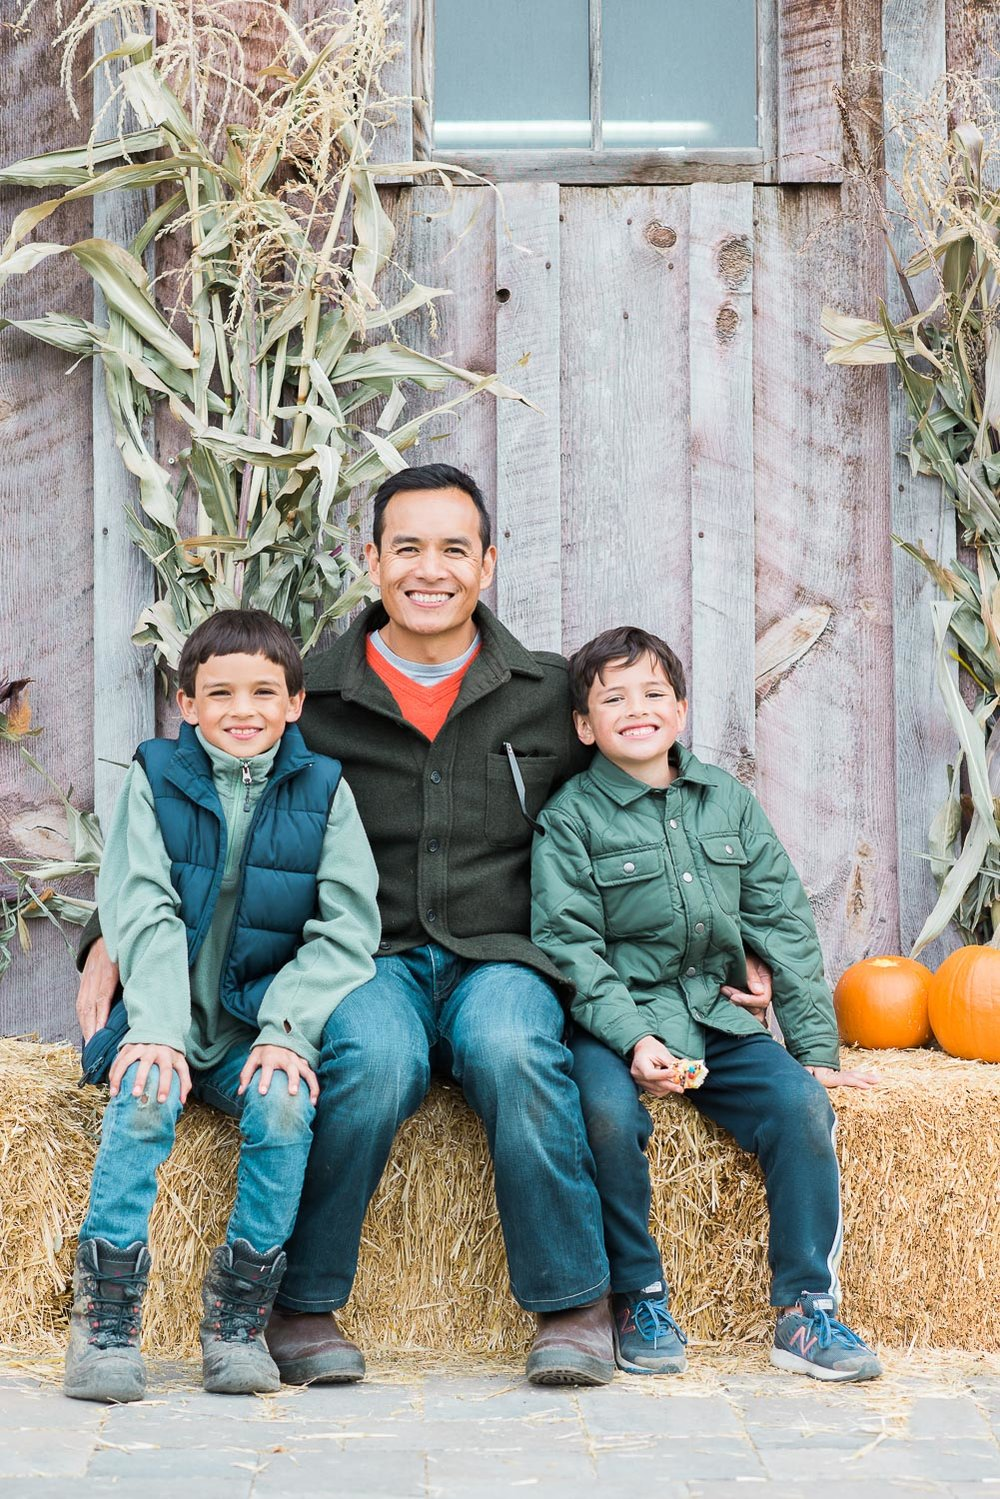 my guys at the pumpkin patch